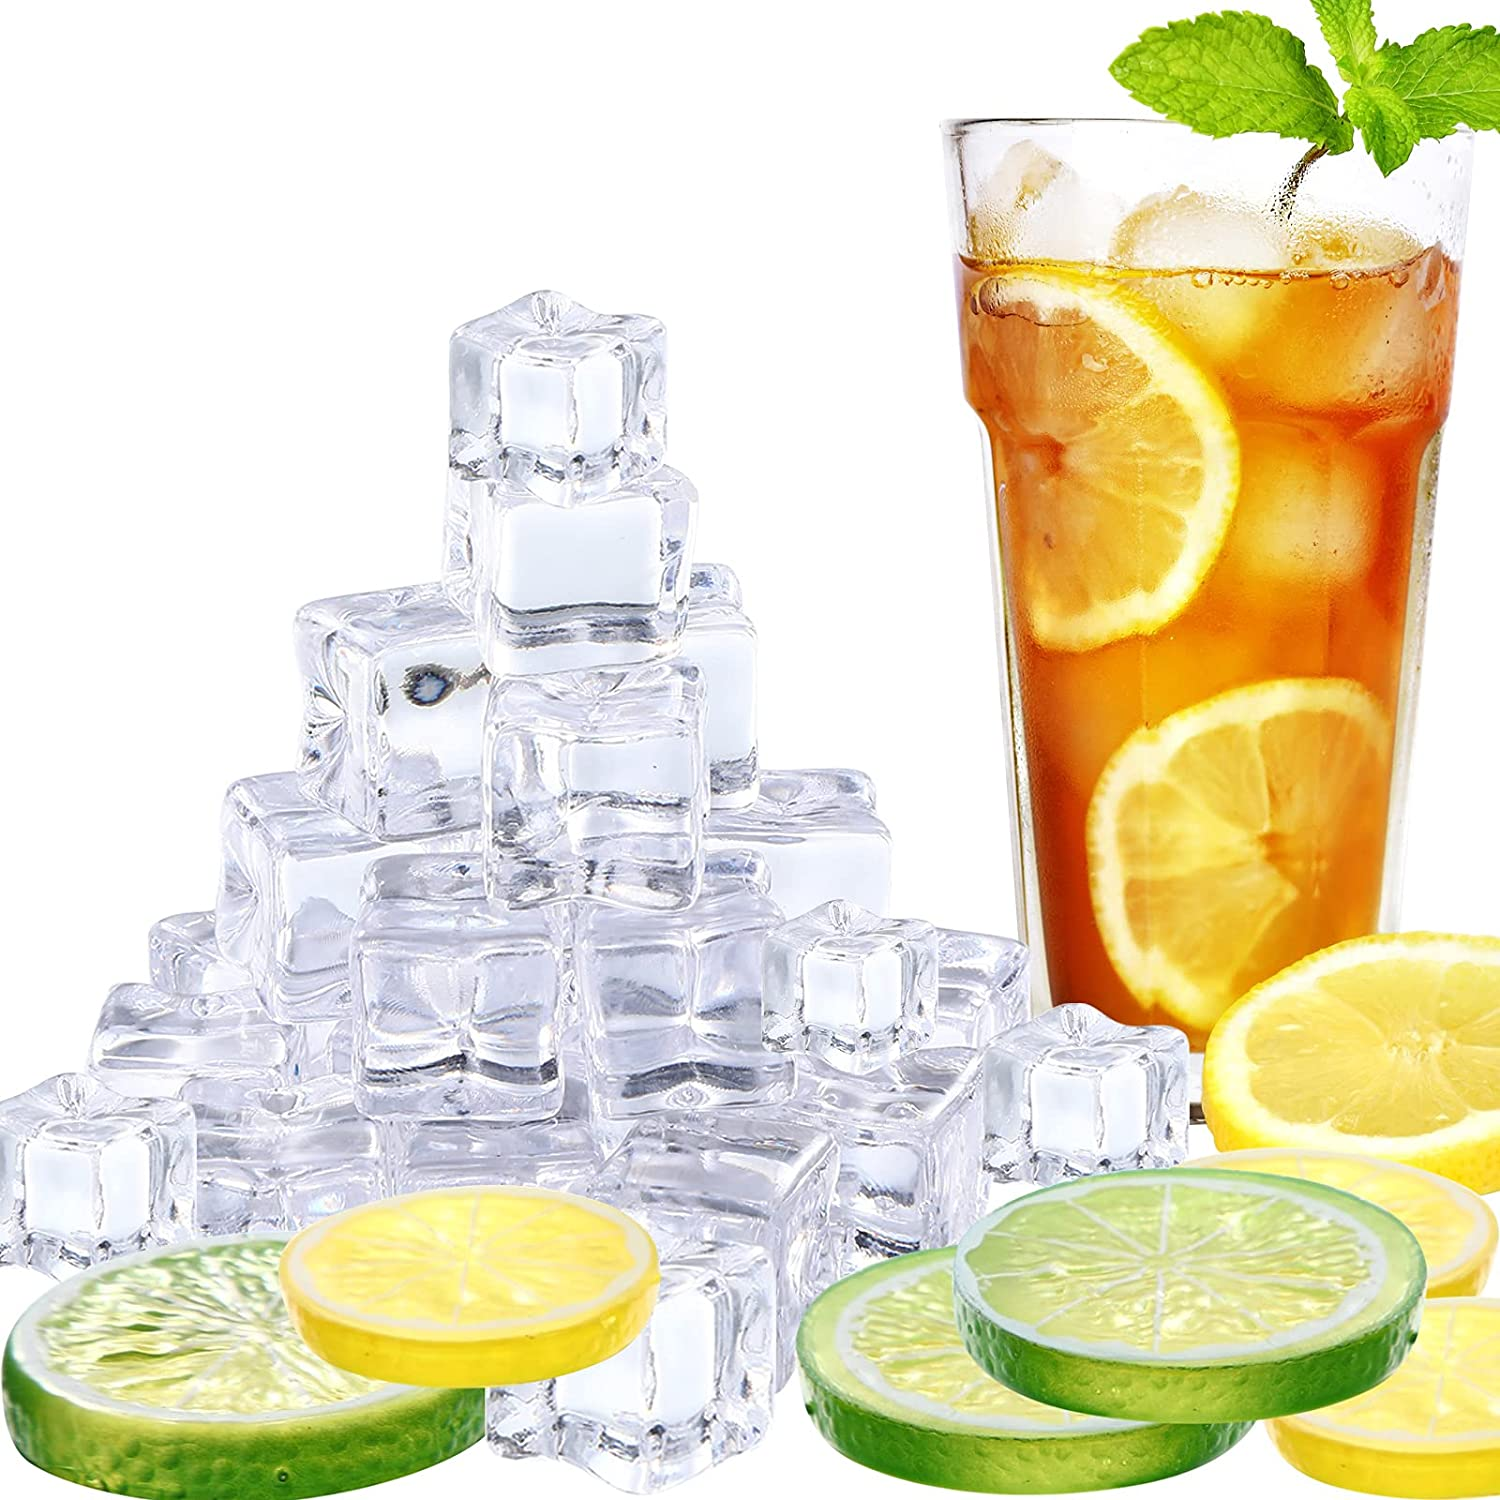 30 Pieces Clear Fake Max 59% OFF Ice Cubes Slices Lemon and Al sold out. Acryl Artificial